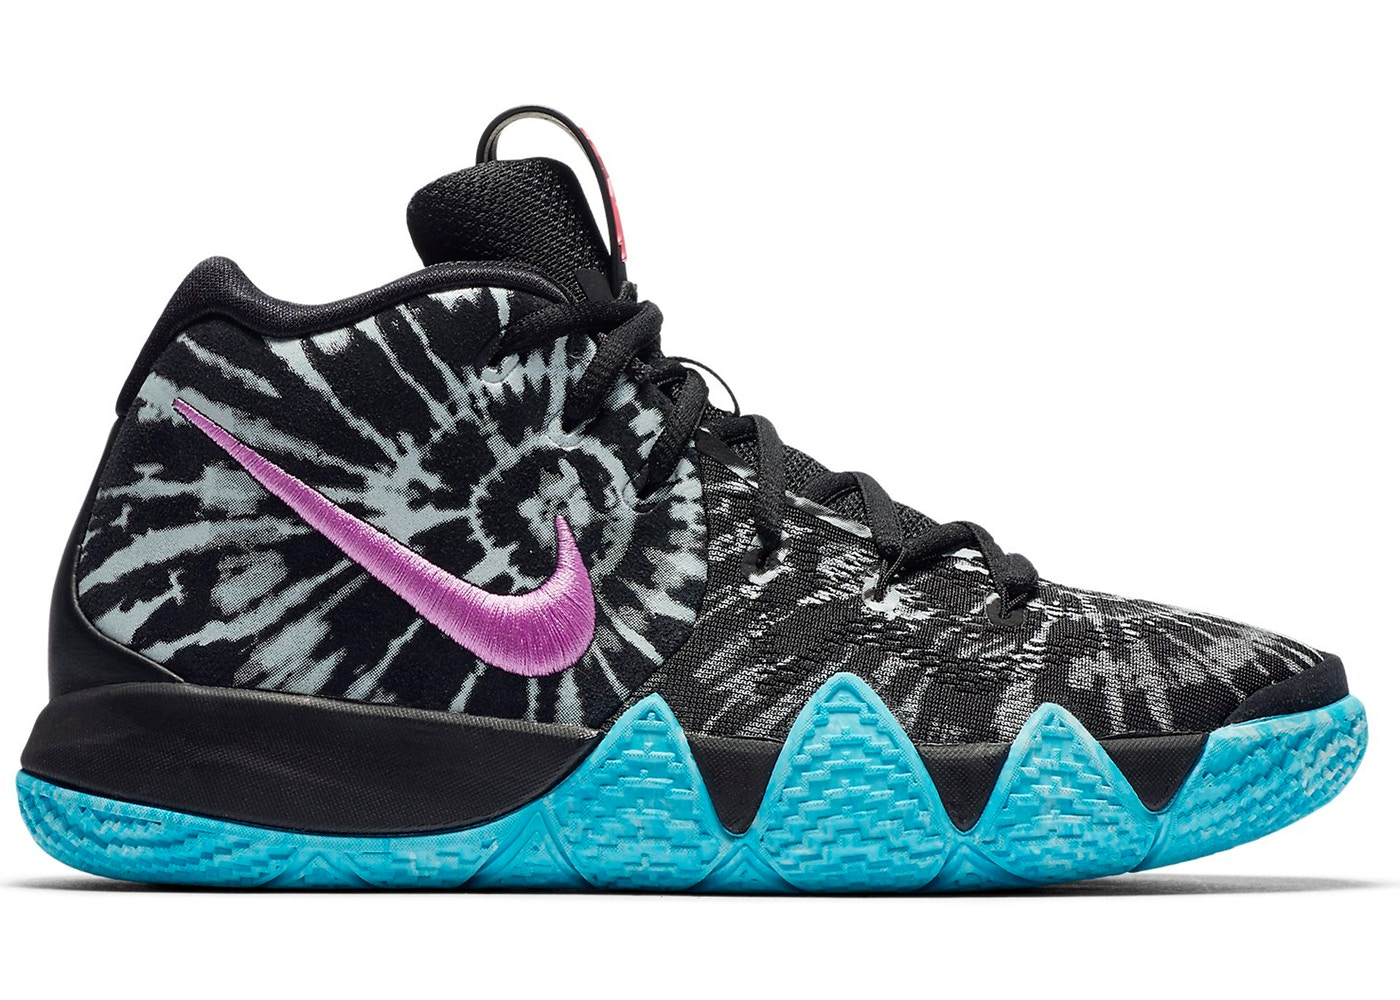 premium selection aaa42 fe73a Nike Basketball Kyrie Shoes - Price Premium